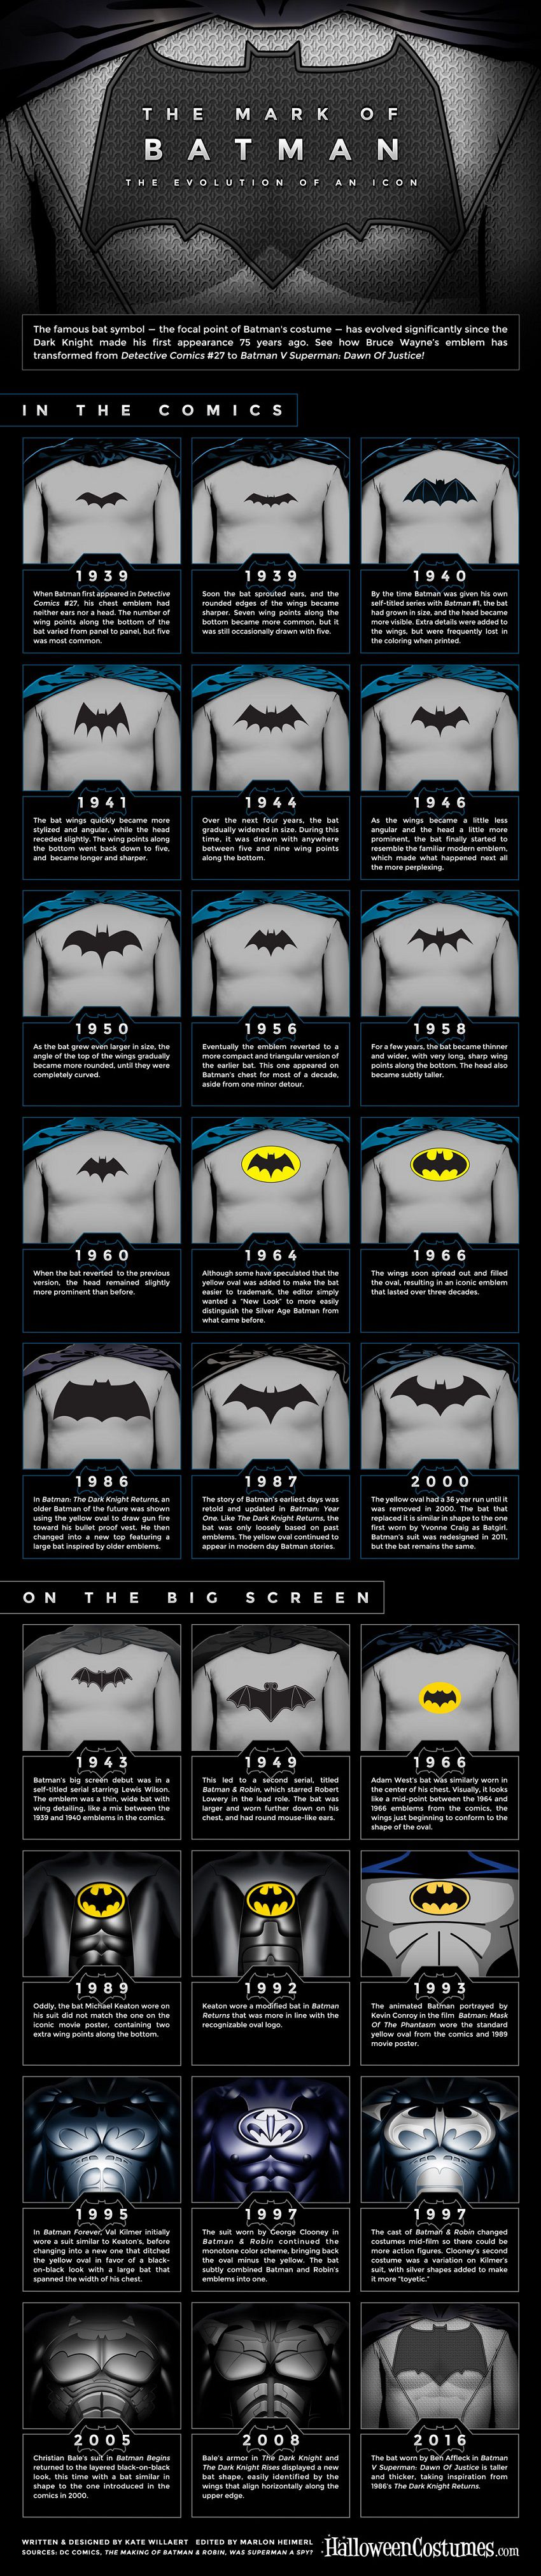 Batman-Infographic-infographie--logo-costume-evolution-full [850x 4049]